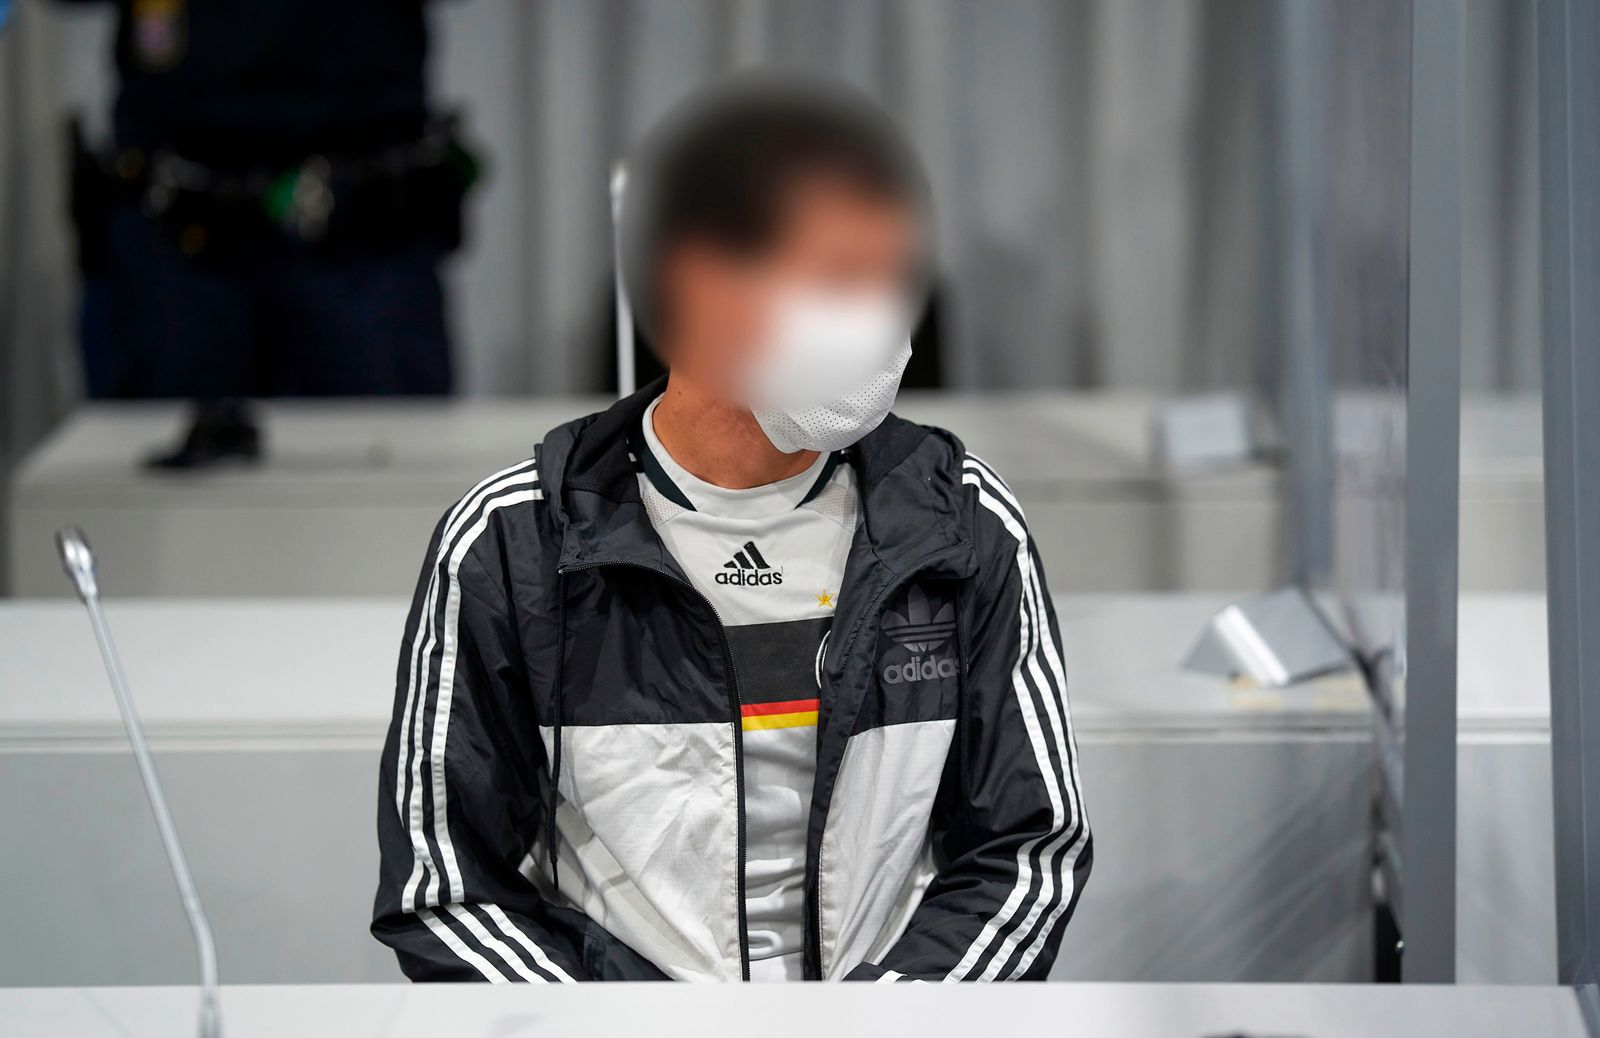 GERMANY-SYRIA-TRIAL-CRASH